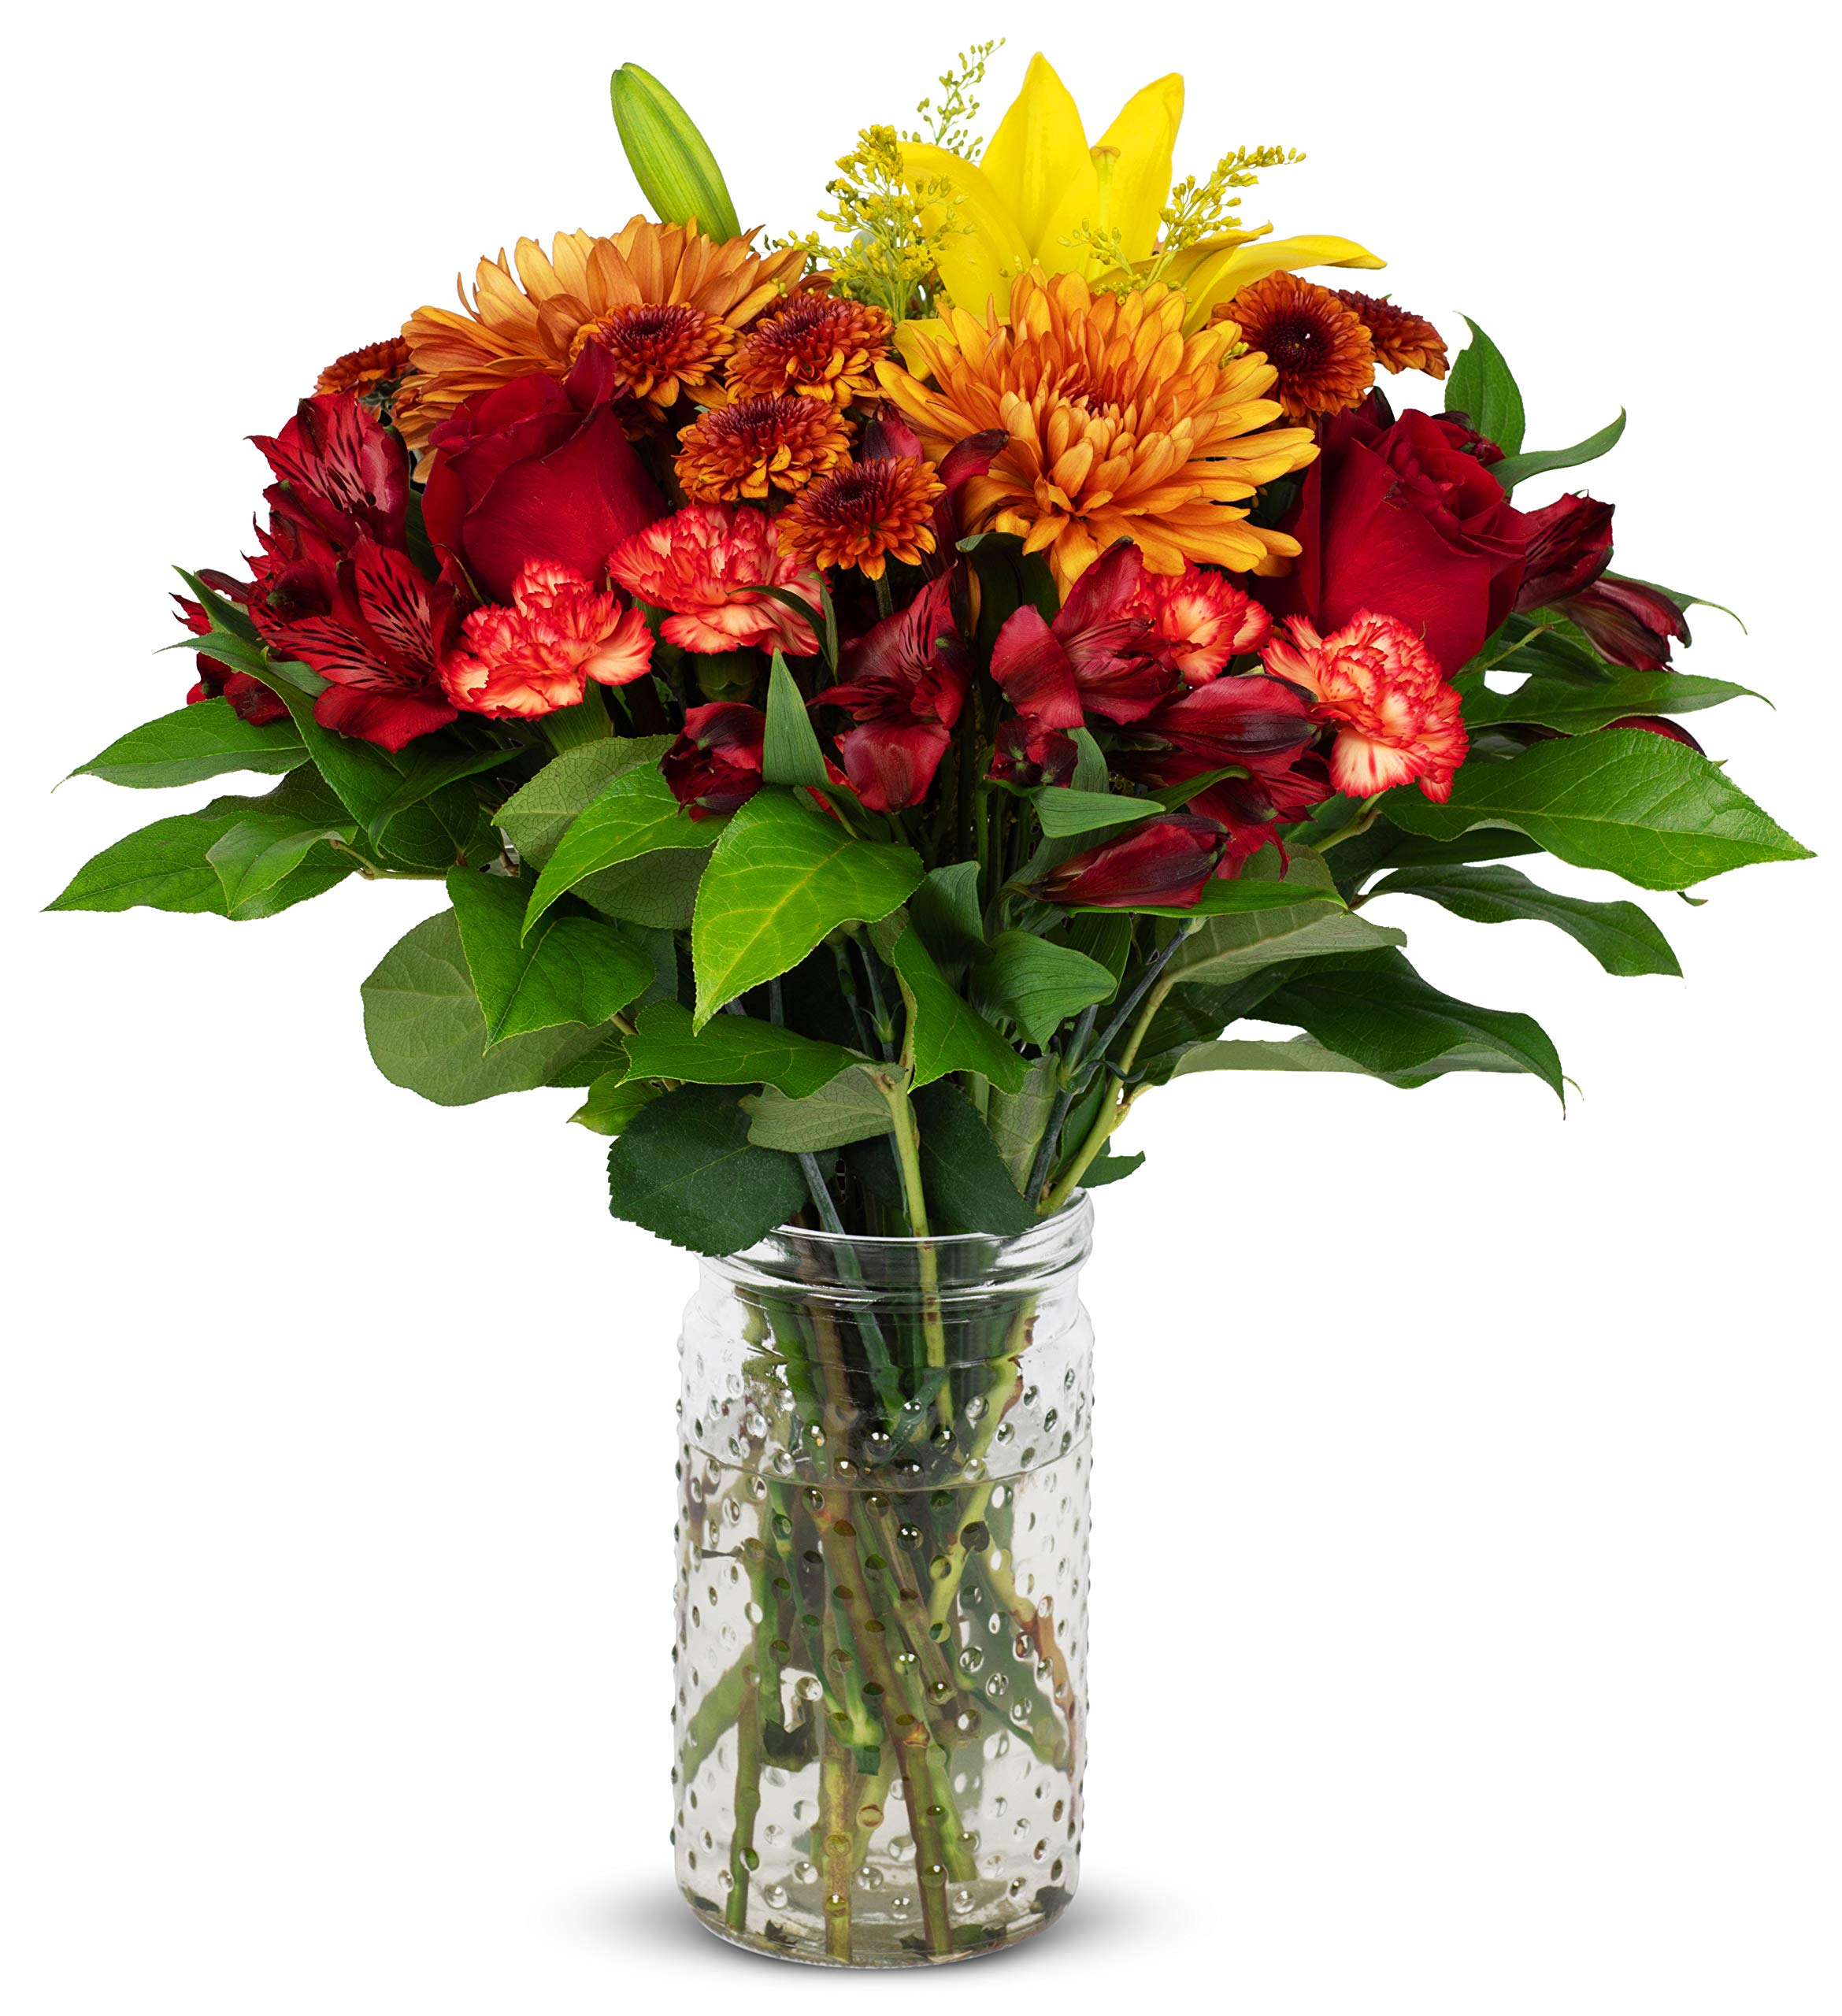 Benchmark Bouquets Harvest Delight, With Vase (Fresh Cut Flowers) by Benchmark Bouquets